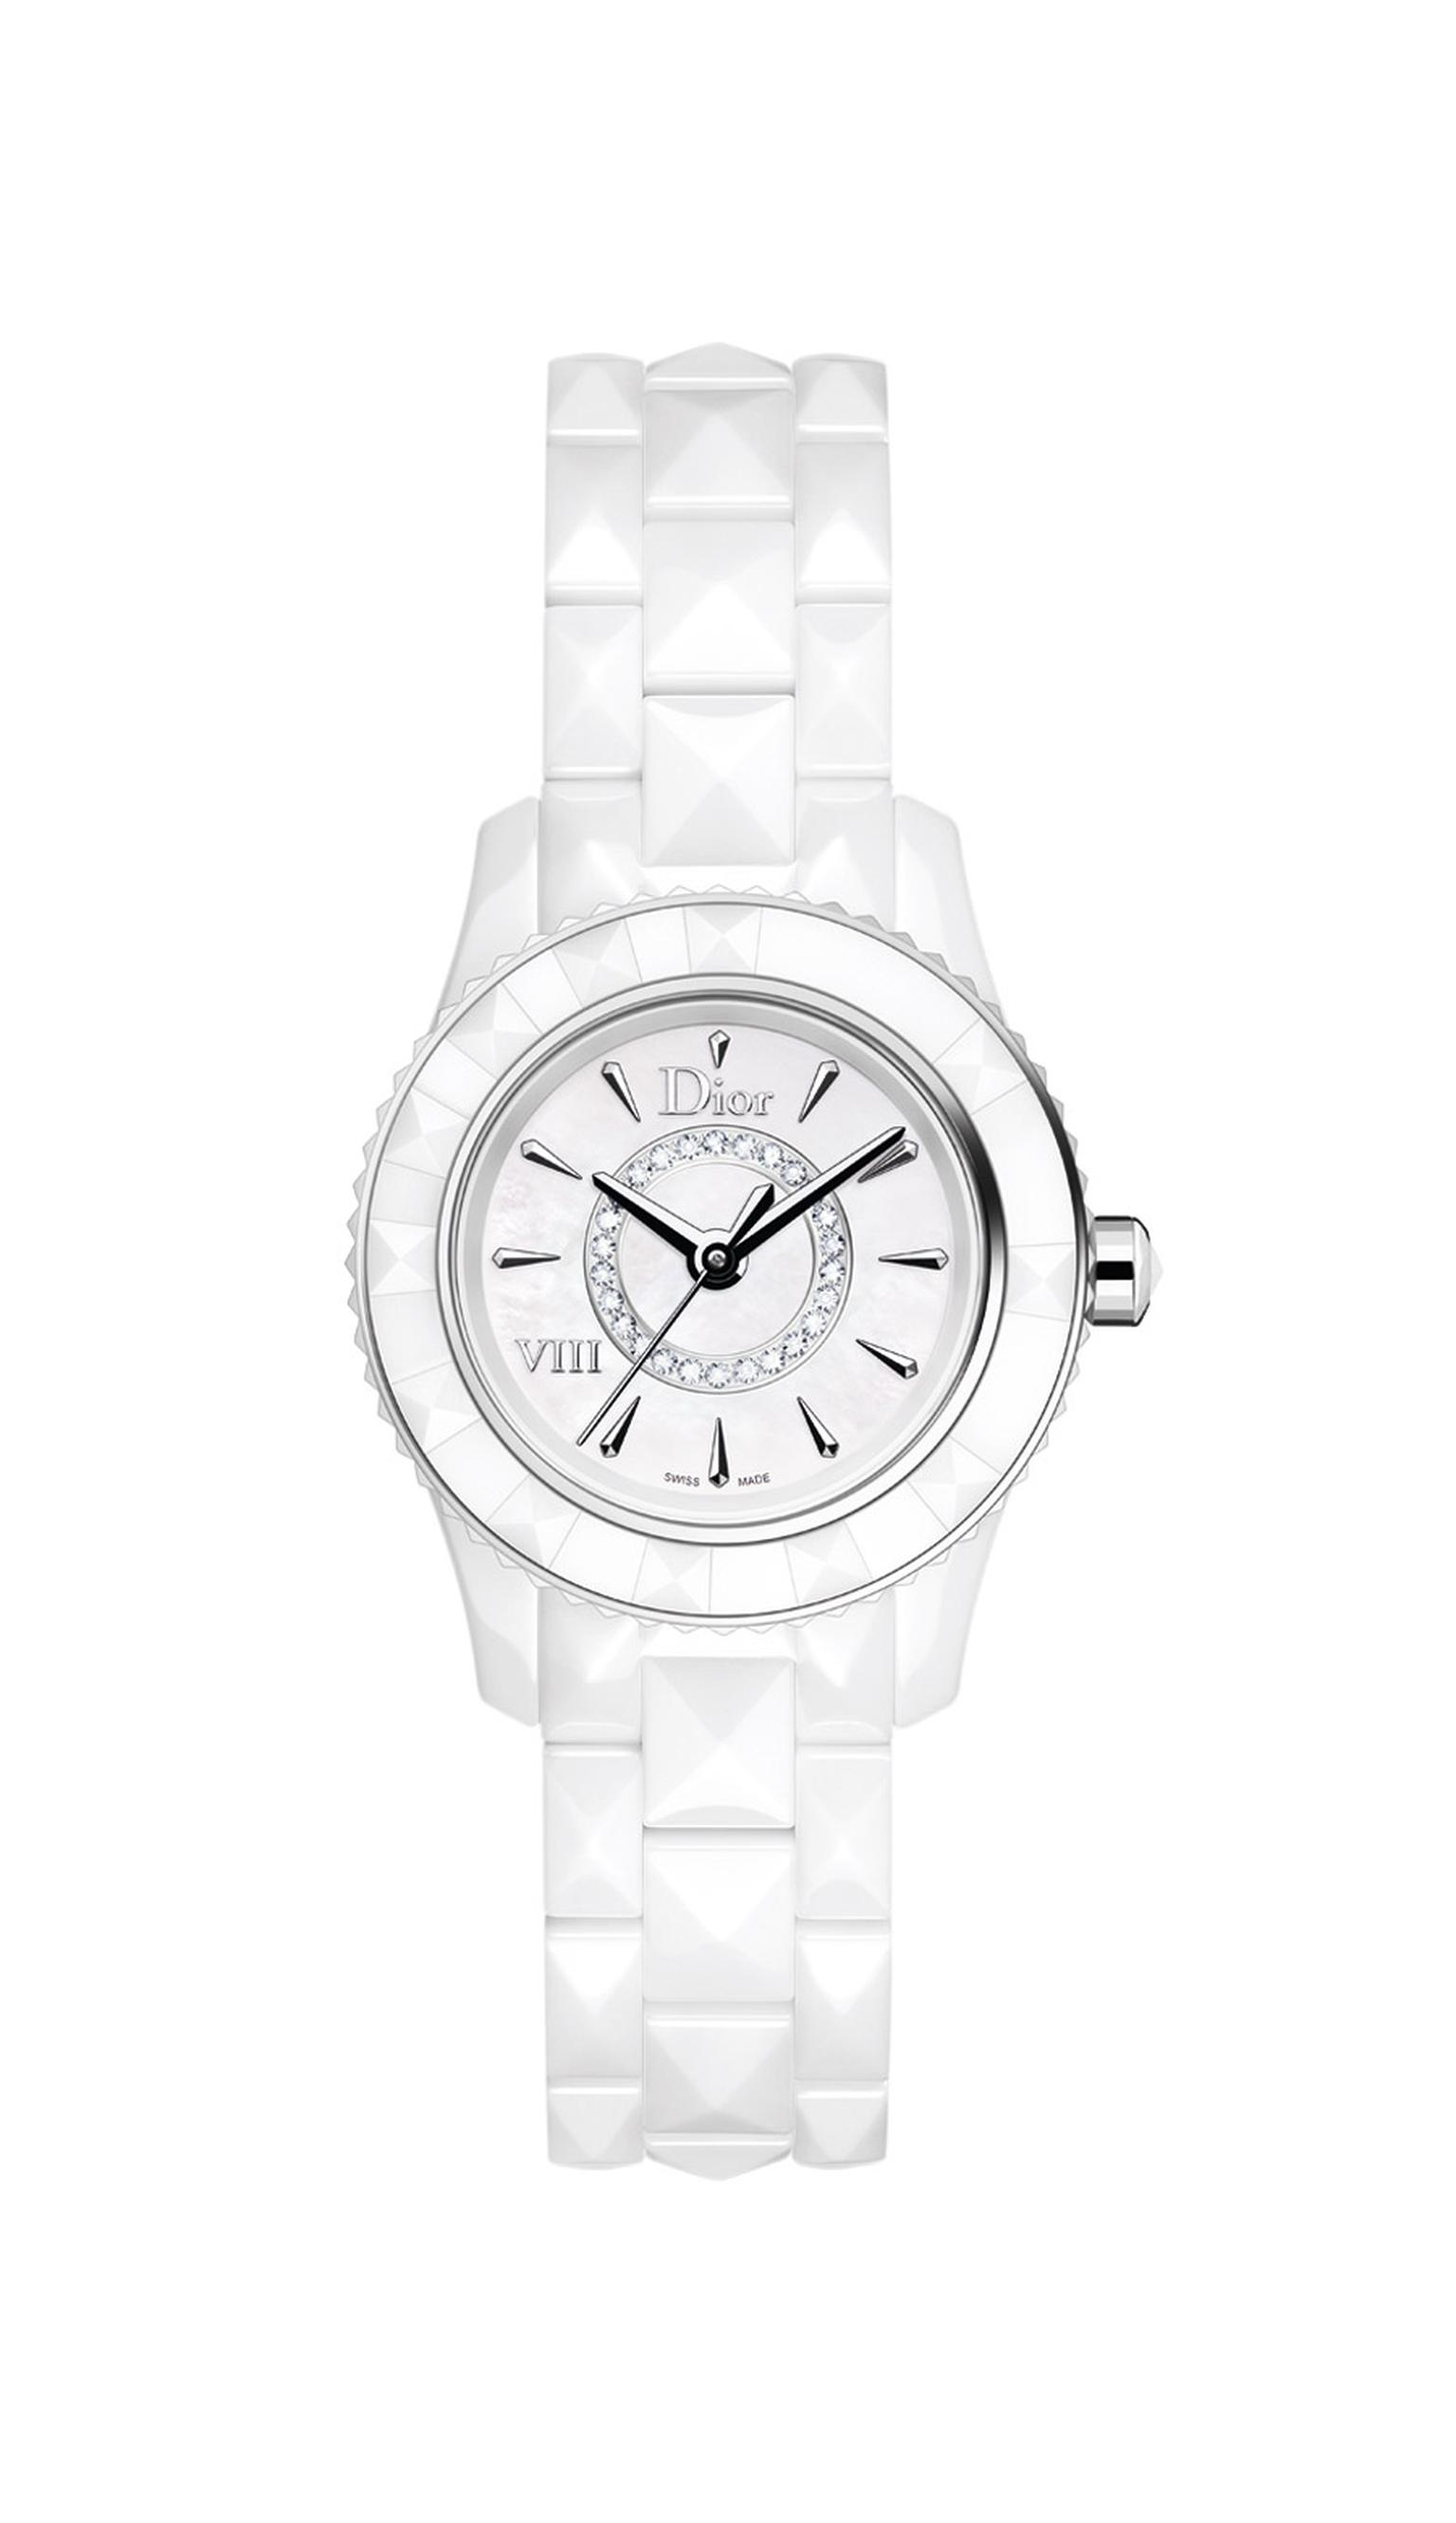 DIOR-VIII-WHITE-QUARTZ-MOTHER-OF-PEARL-DIAMOND-SET-DIAL-28mm.jpg